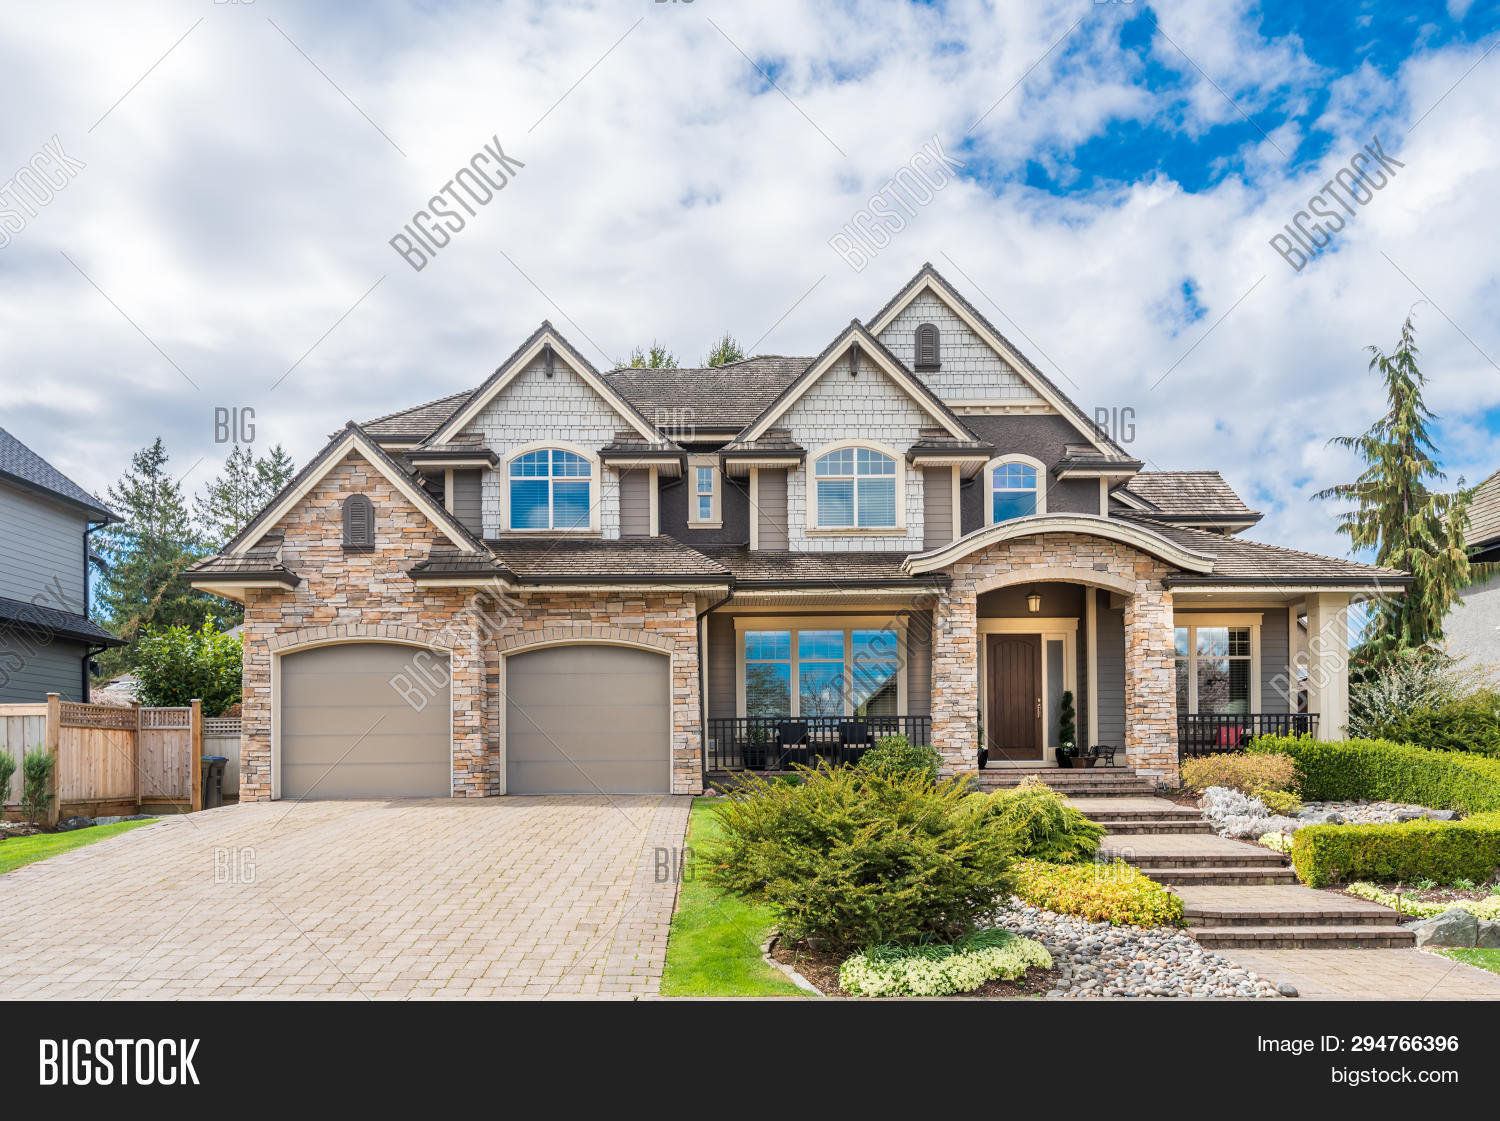 Beautiful exterior of newly built luxury home. Yard with green grass and walkway lead to front entra